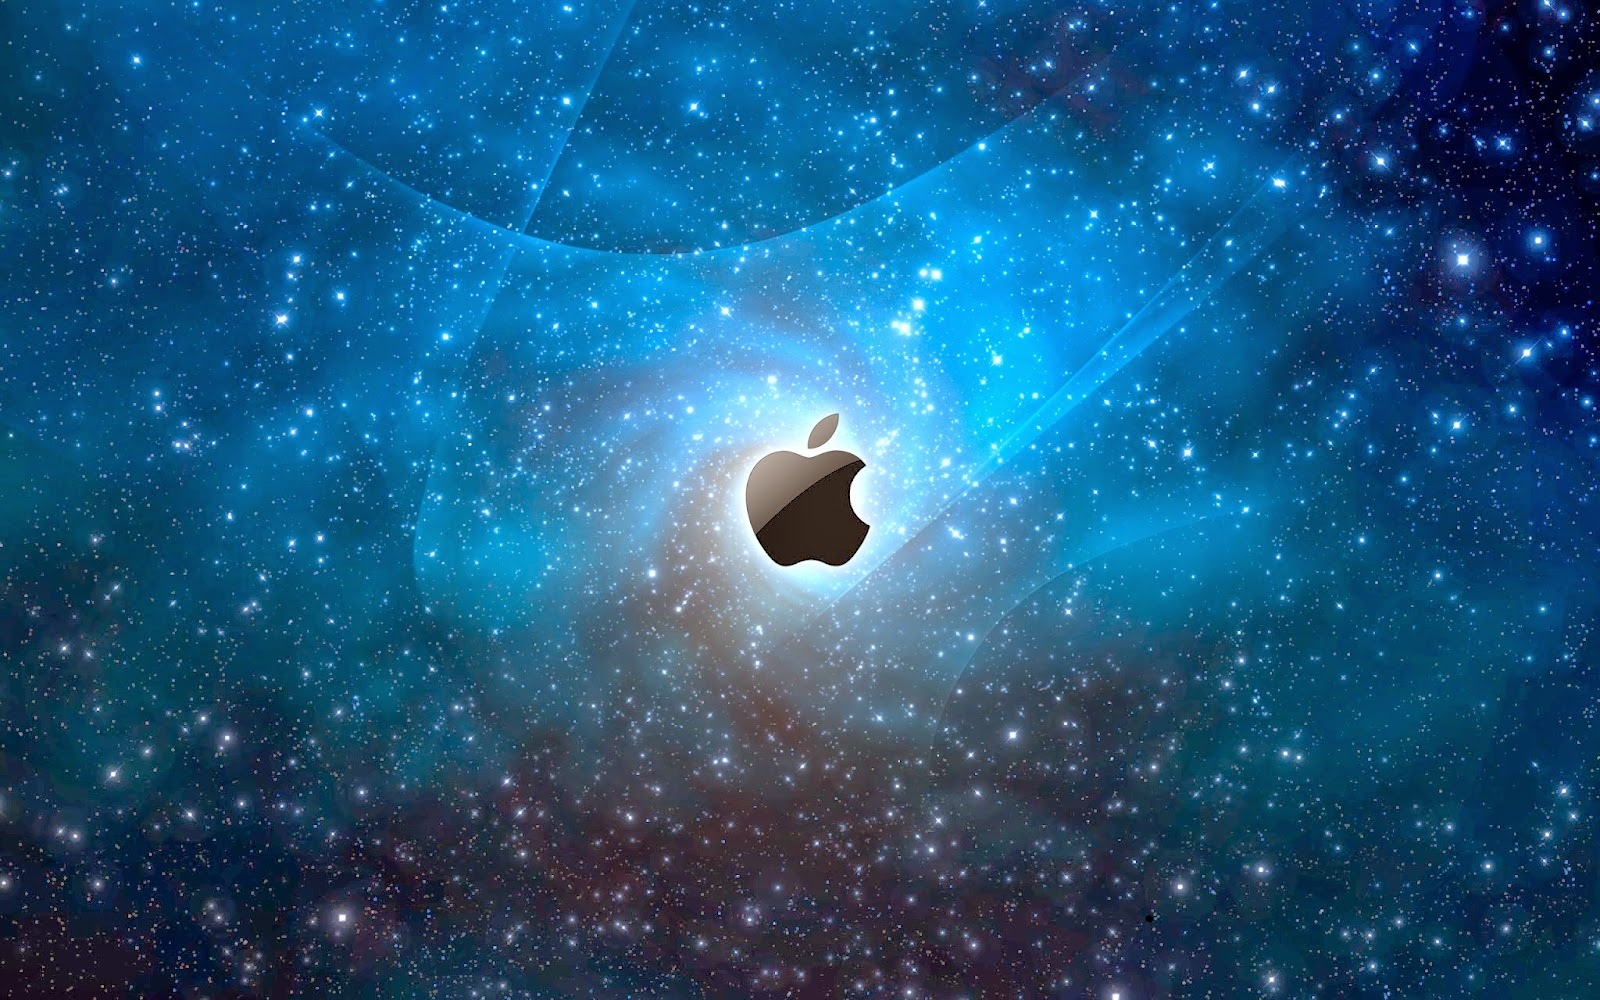 new apple wallpapers,outer space,atmosphere,sky,astronomical object,space